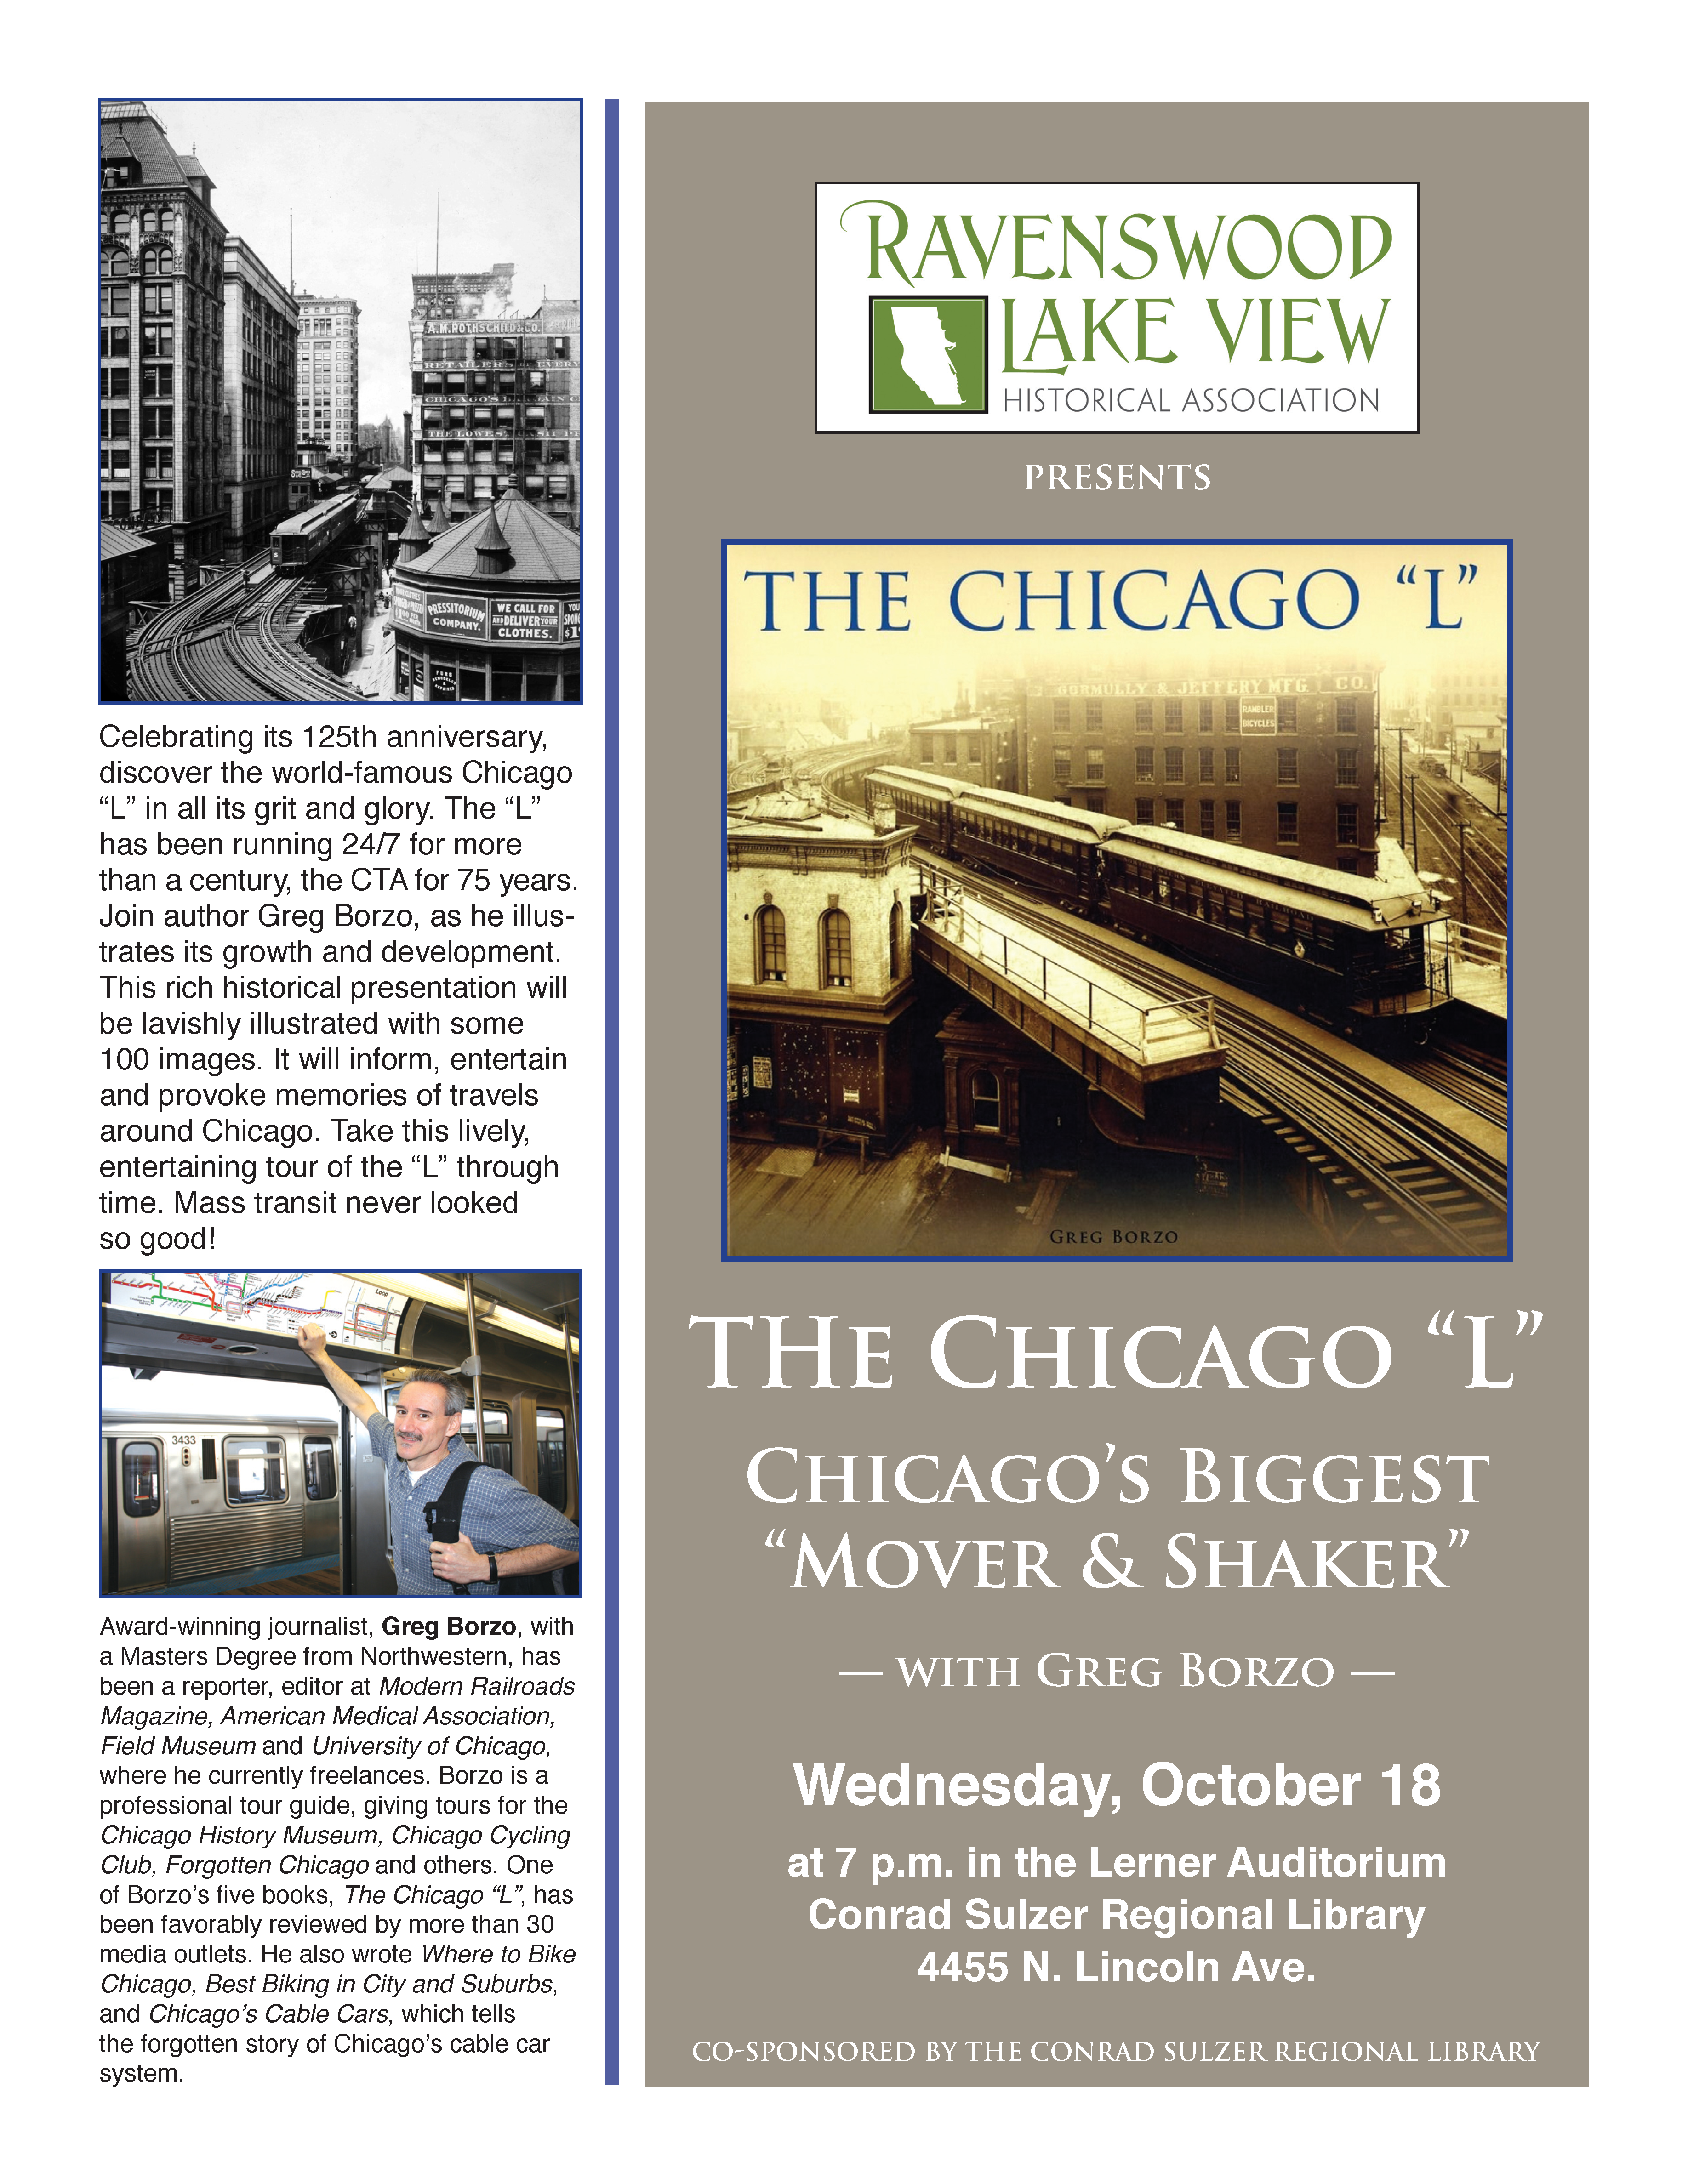 """The Chicago """"L"""" - Wednesday, October 18 at 7 p.m. - Conrad Sulzer Regional Library - 4455 N. Lincoln Ave."""